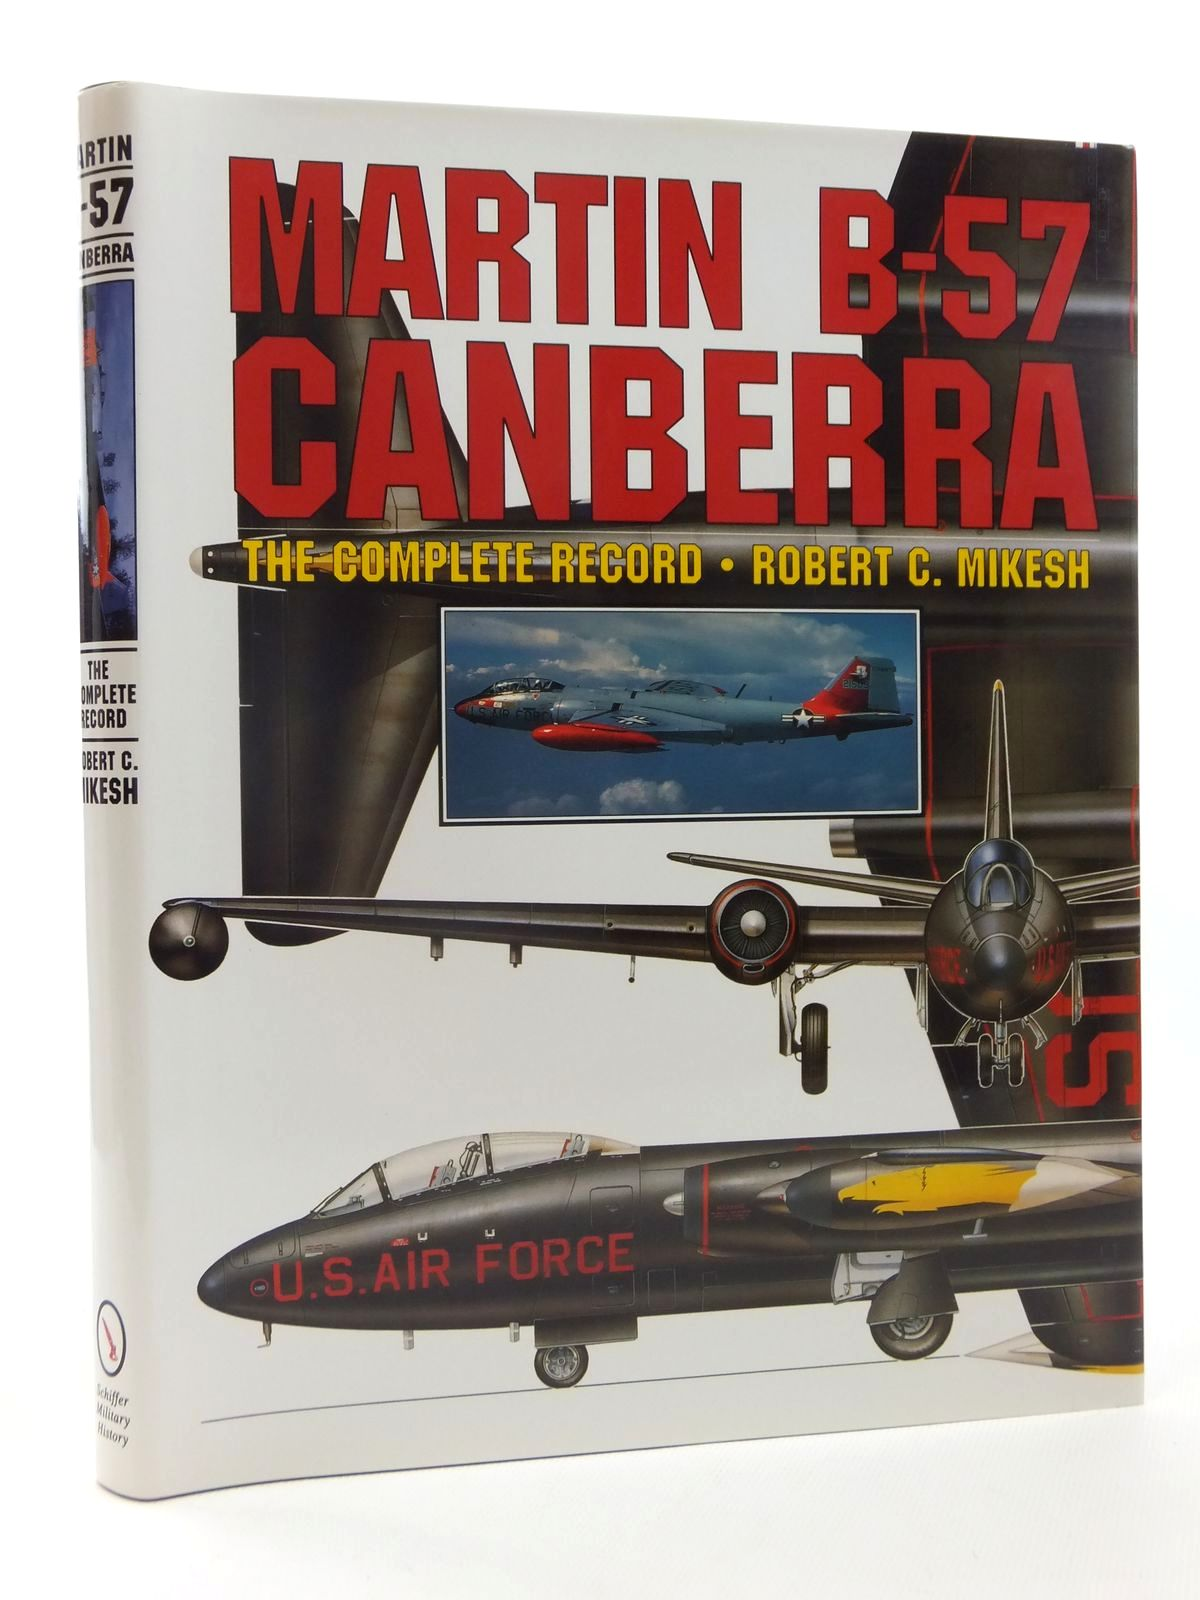 Photo of MARTIN B-57 CANBERRA THE COMPLETE RECORD written by Mikesh, Robert C. published by Schiffer Publishing Ltd. (STOCK CODE: 1609946)  for sale by Stella & Rose's Books